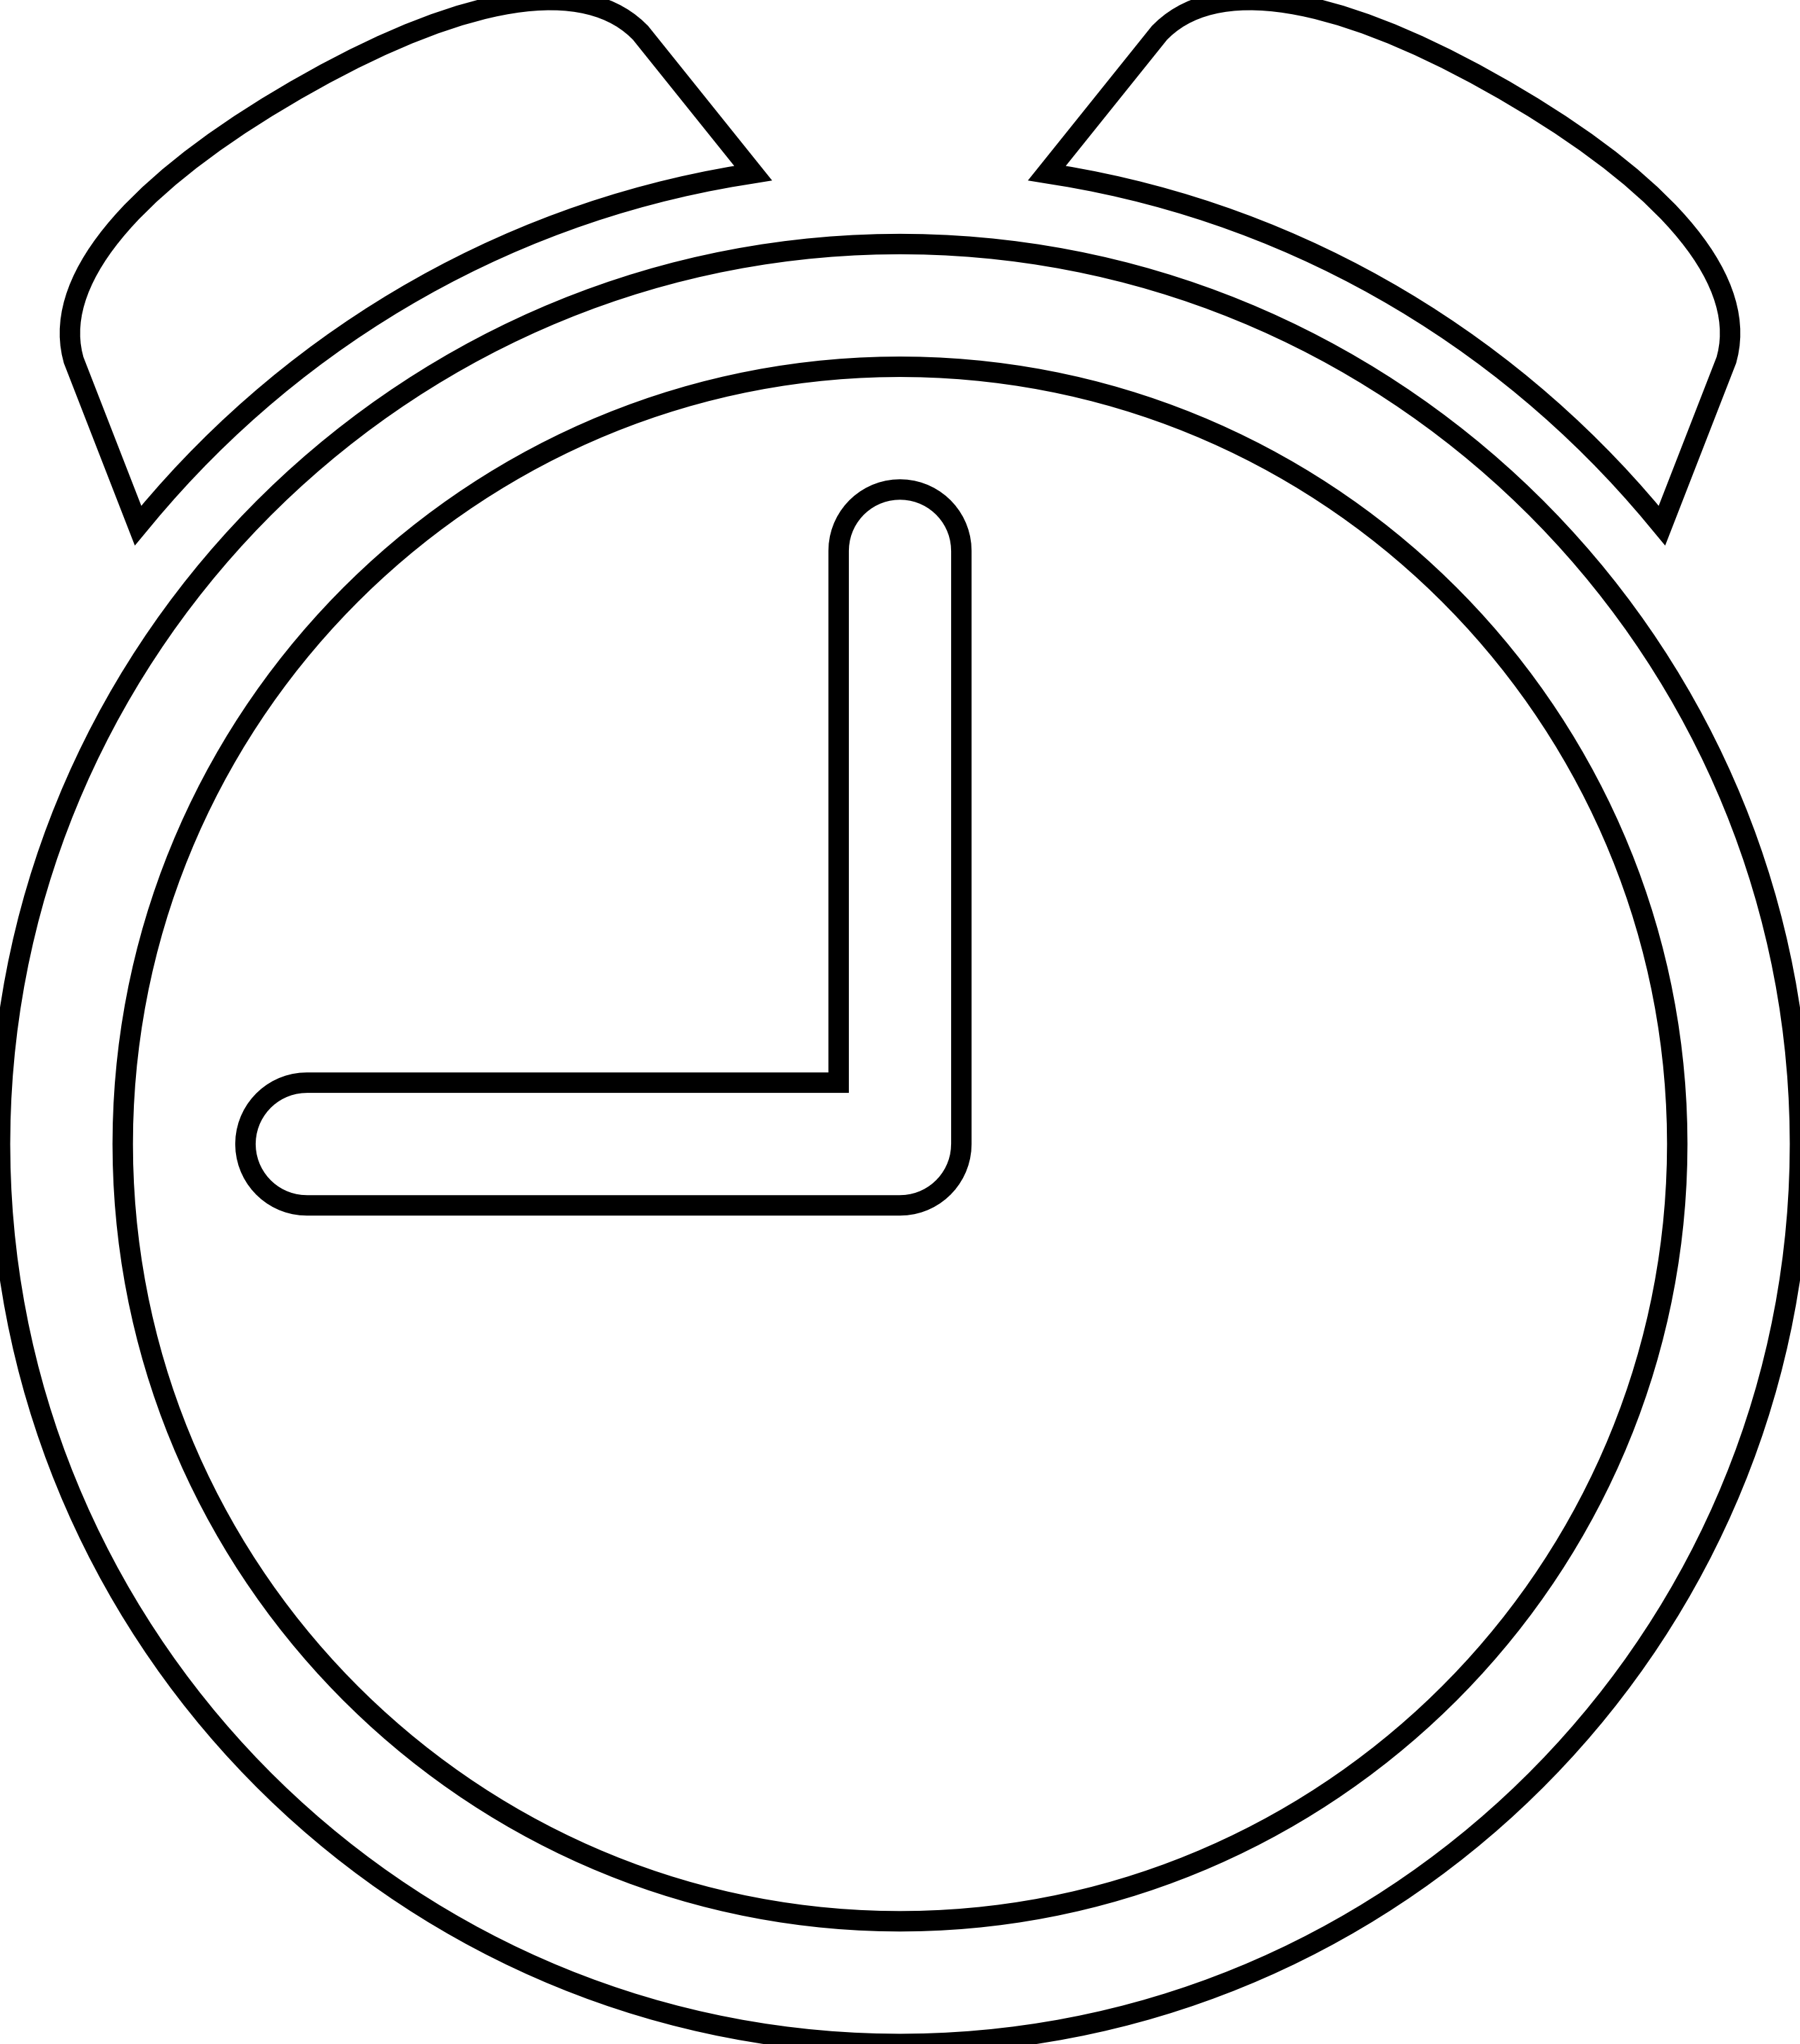 Line Drawing Icons : Digital clock clipart black and white panda